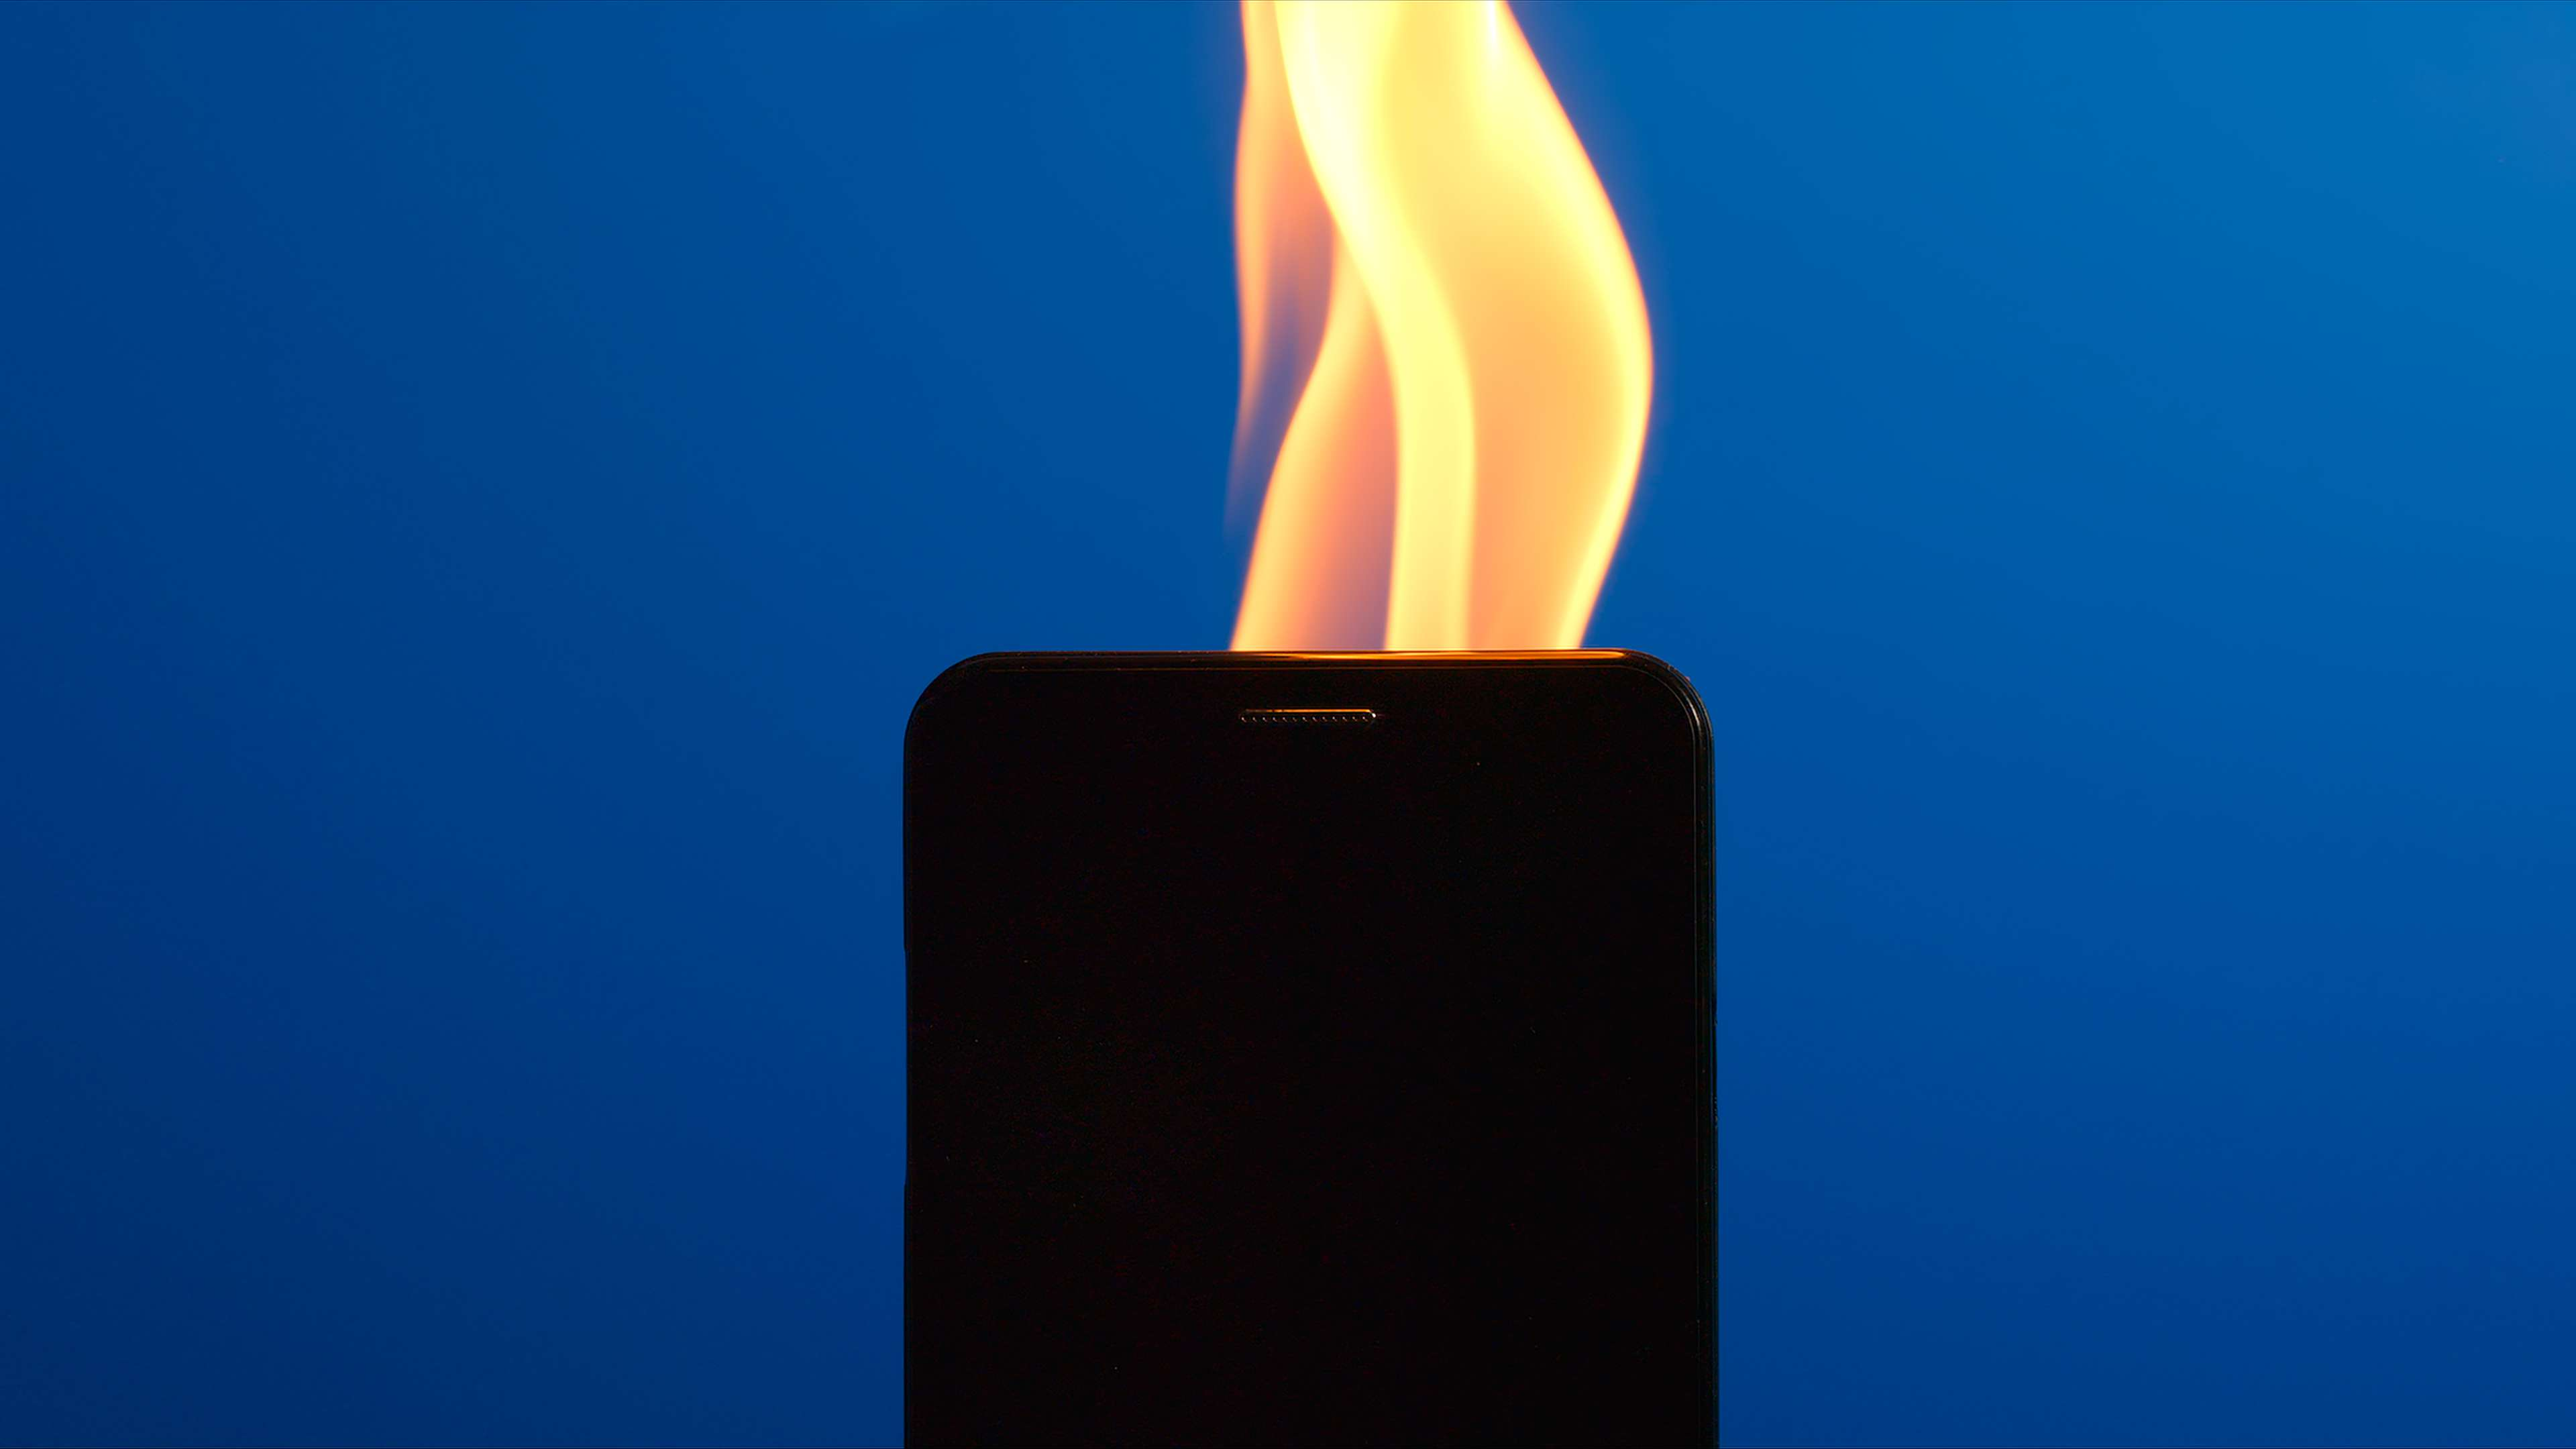 Silhouette of smartphone burning